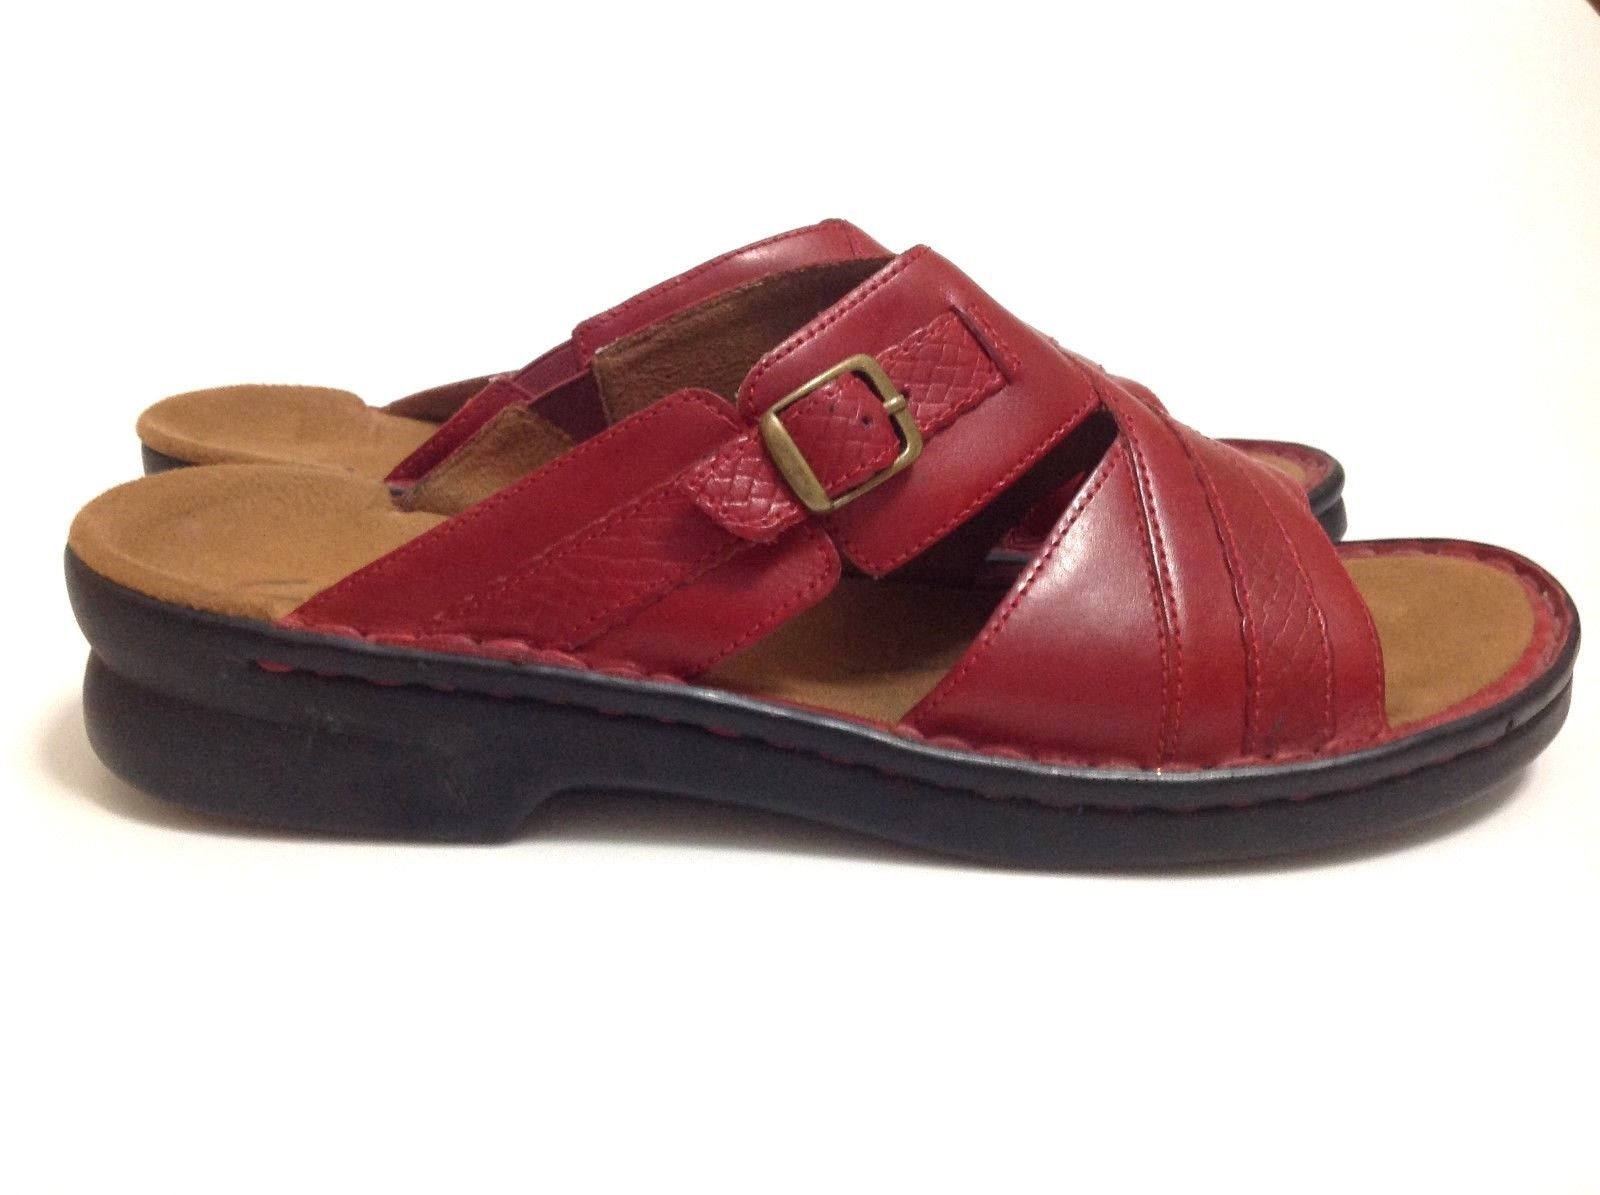 113e32fbf CLARKS RED LEATHER Womens Slides Slip On Sandals Comfort Sz 11 Croc Accent  -  33.65